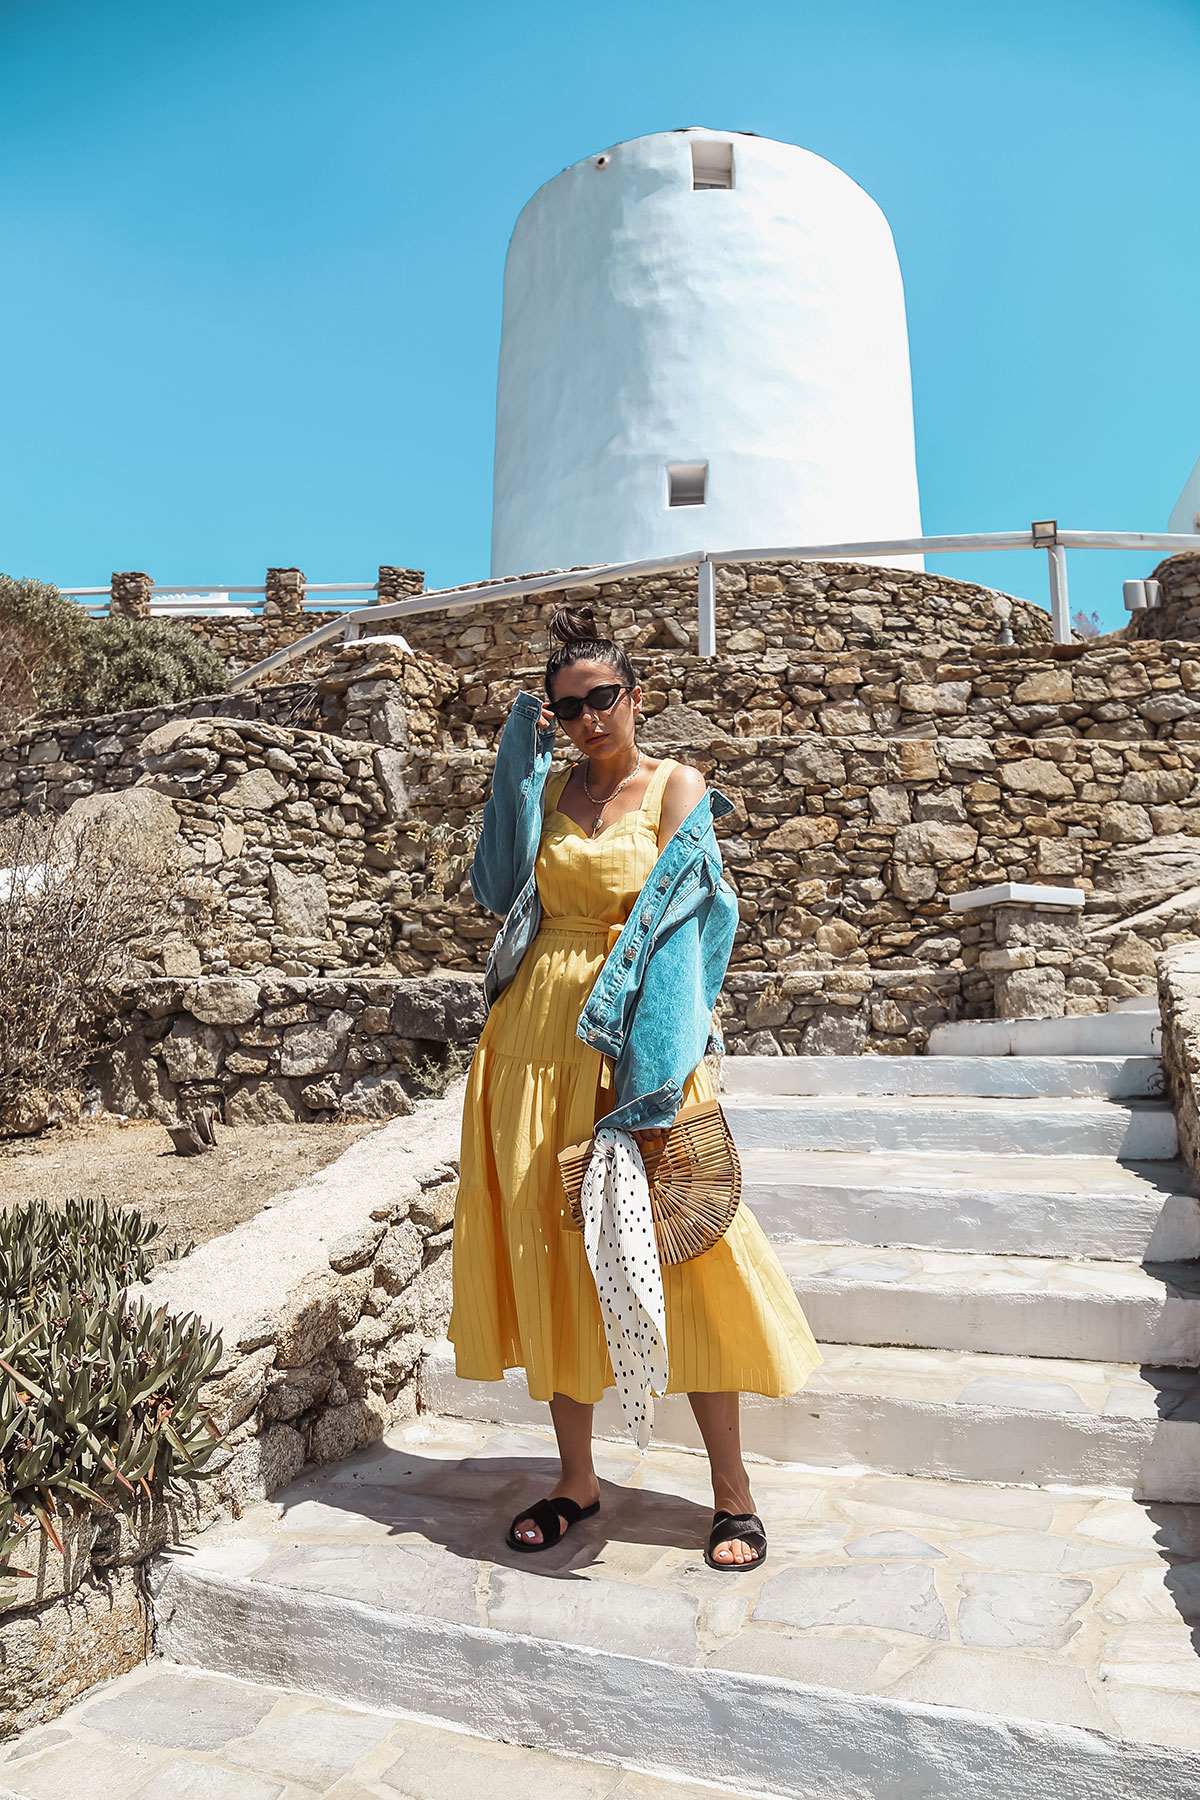 yellow dress and denim jacket in Mykonos - Michael Kors Dress worn by Stella Asteria - Fashion & Lifestyle Blogger